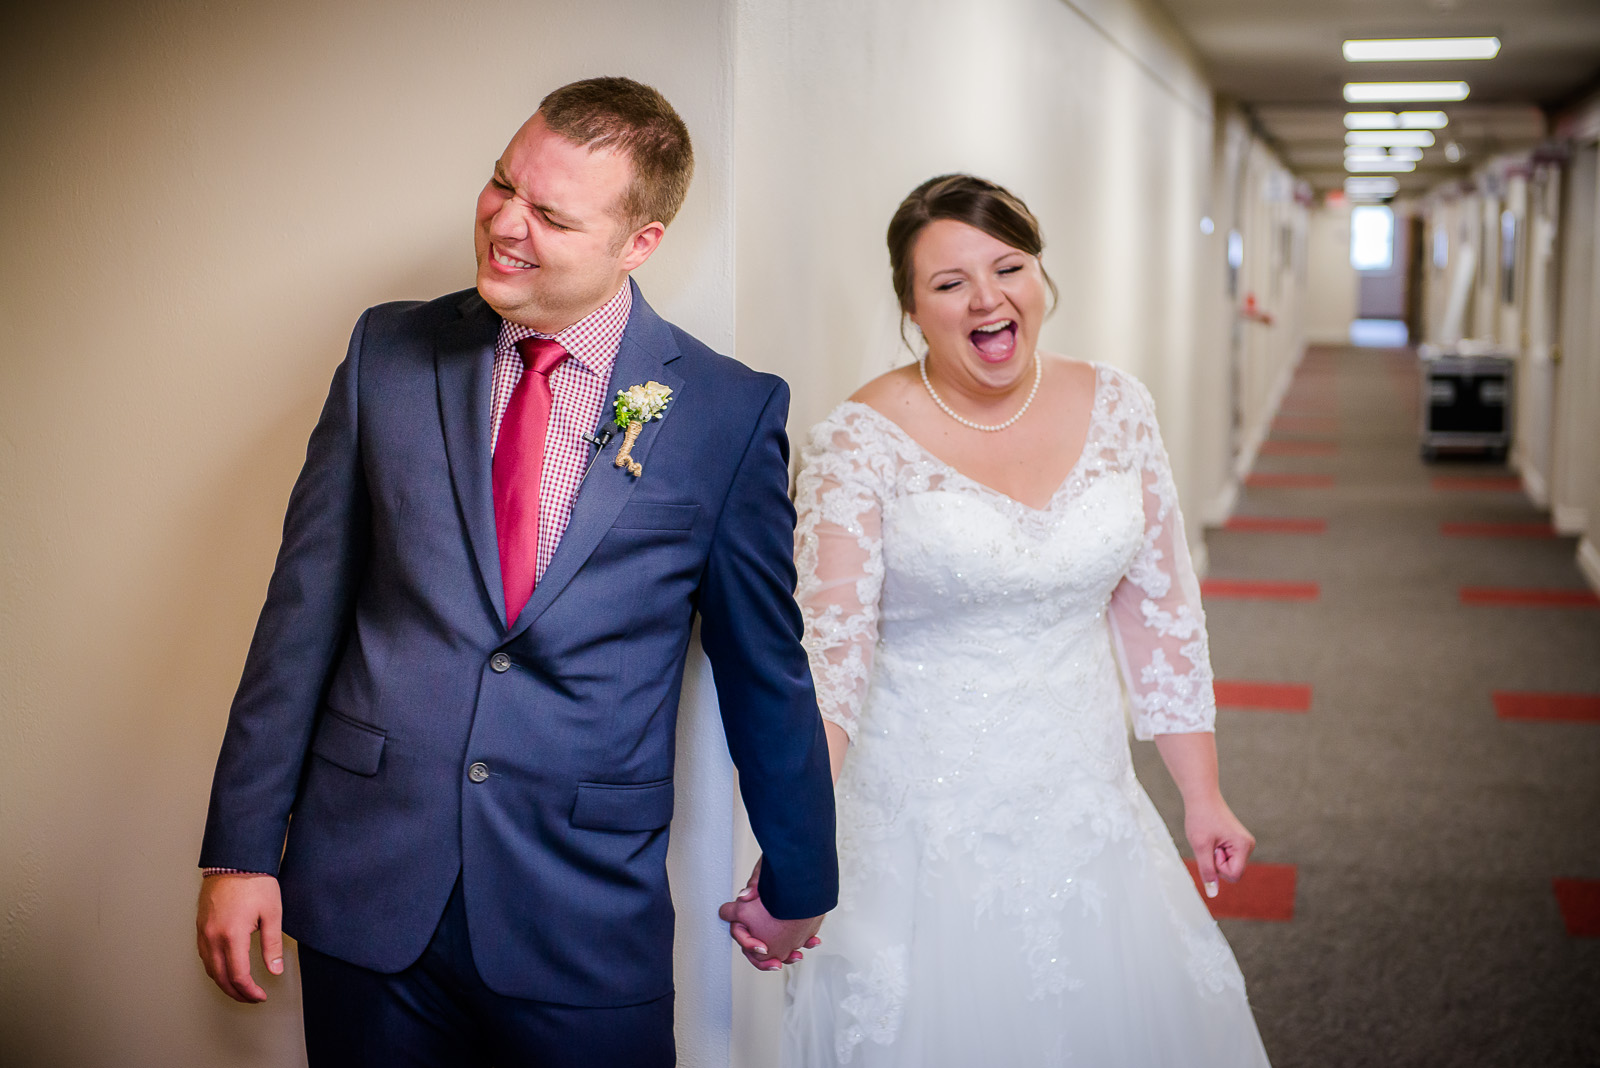 Eric_and_Christy_Photography_Blog_Wedding_Stacey_Geoff-1